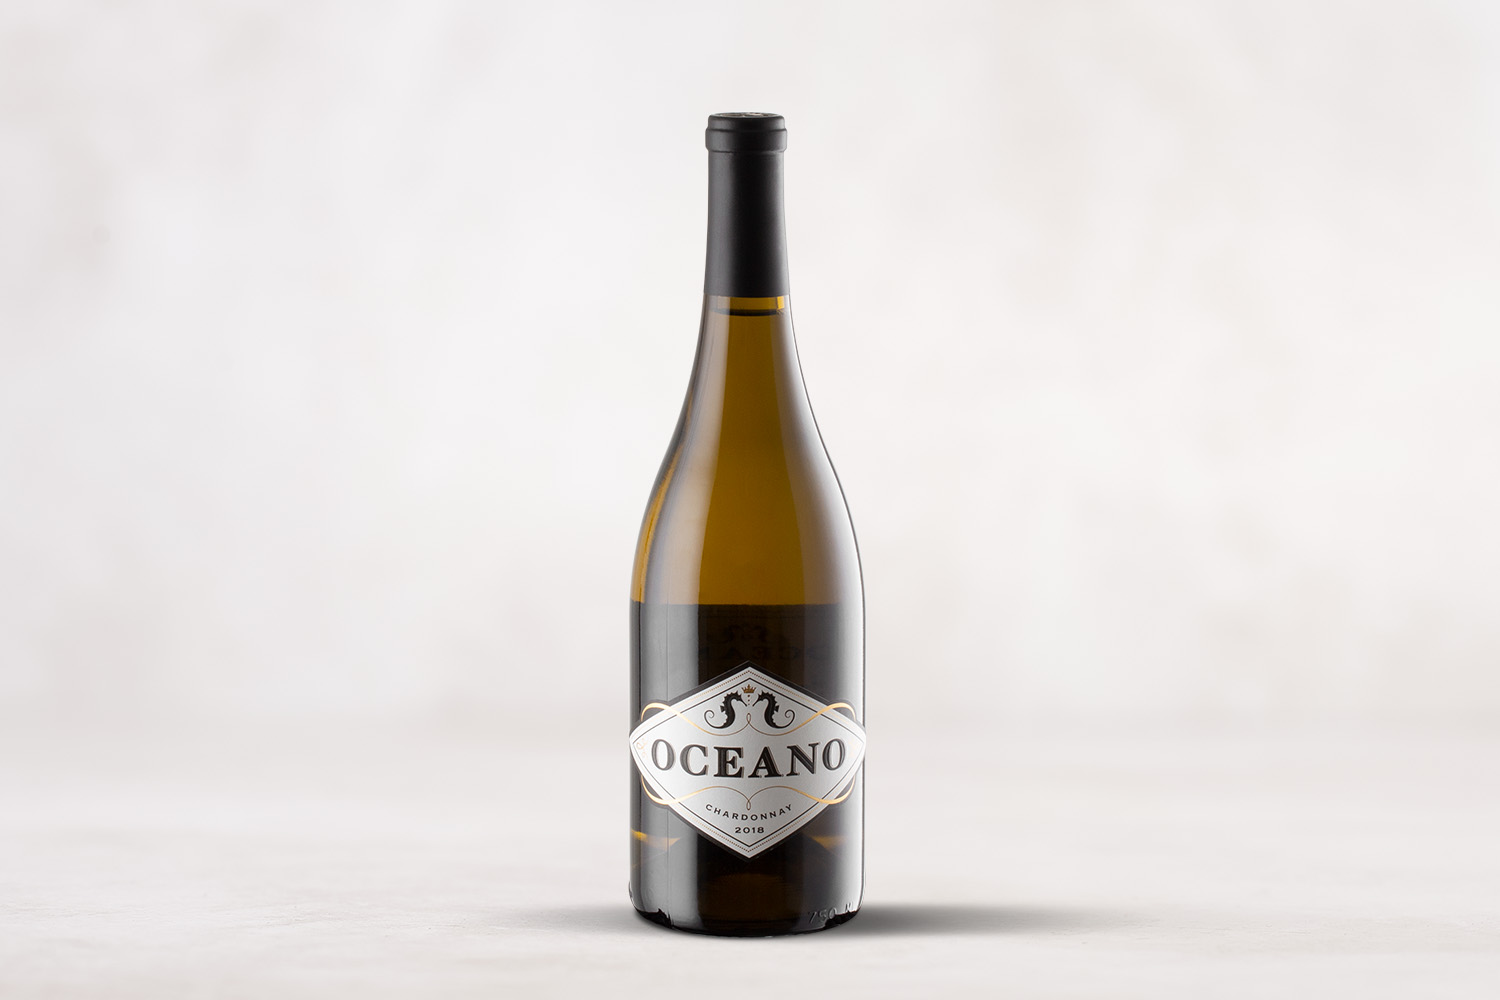 Oceano, 'Spanish Springs Vineyard', Chardonnay San Luis Obispo County, California 2018 - SommSelect